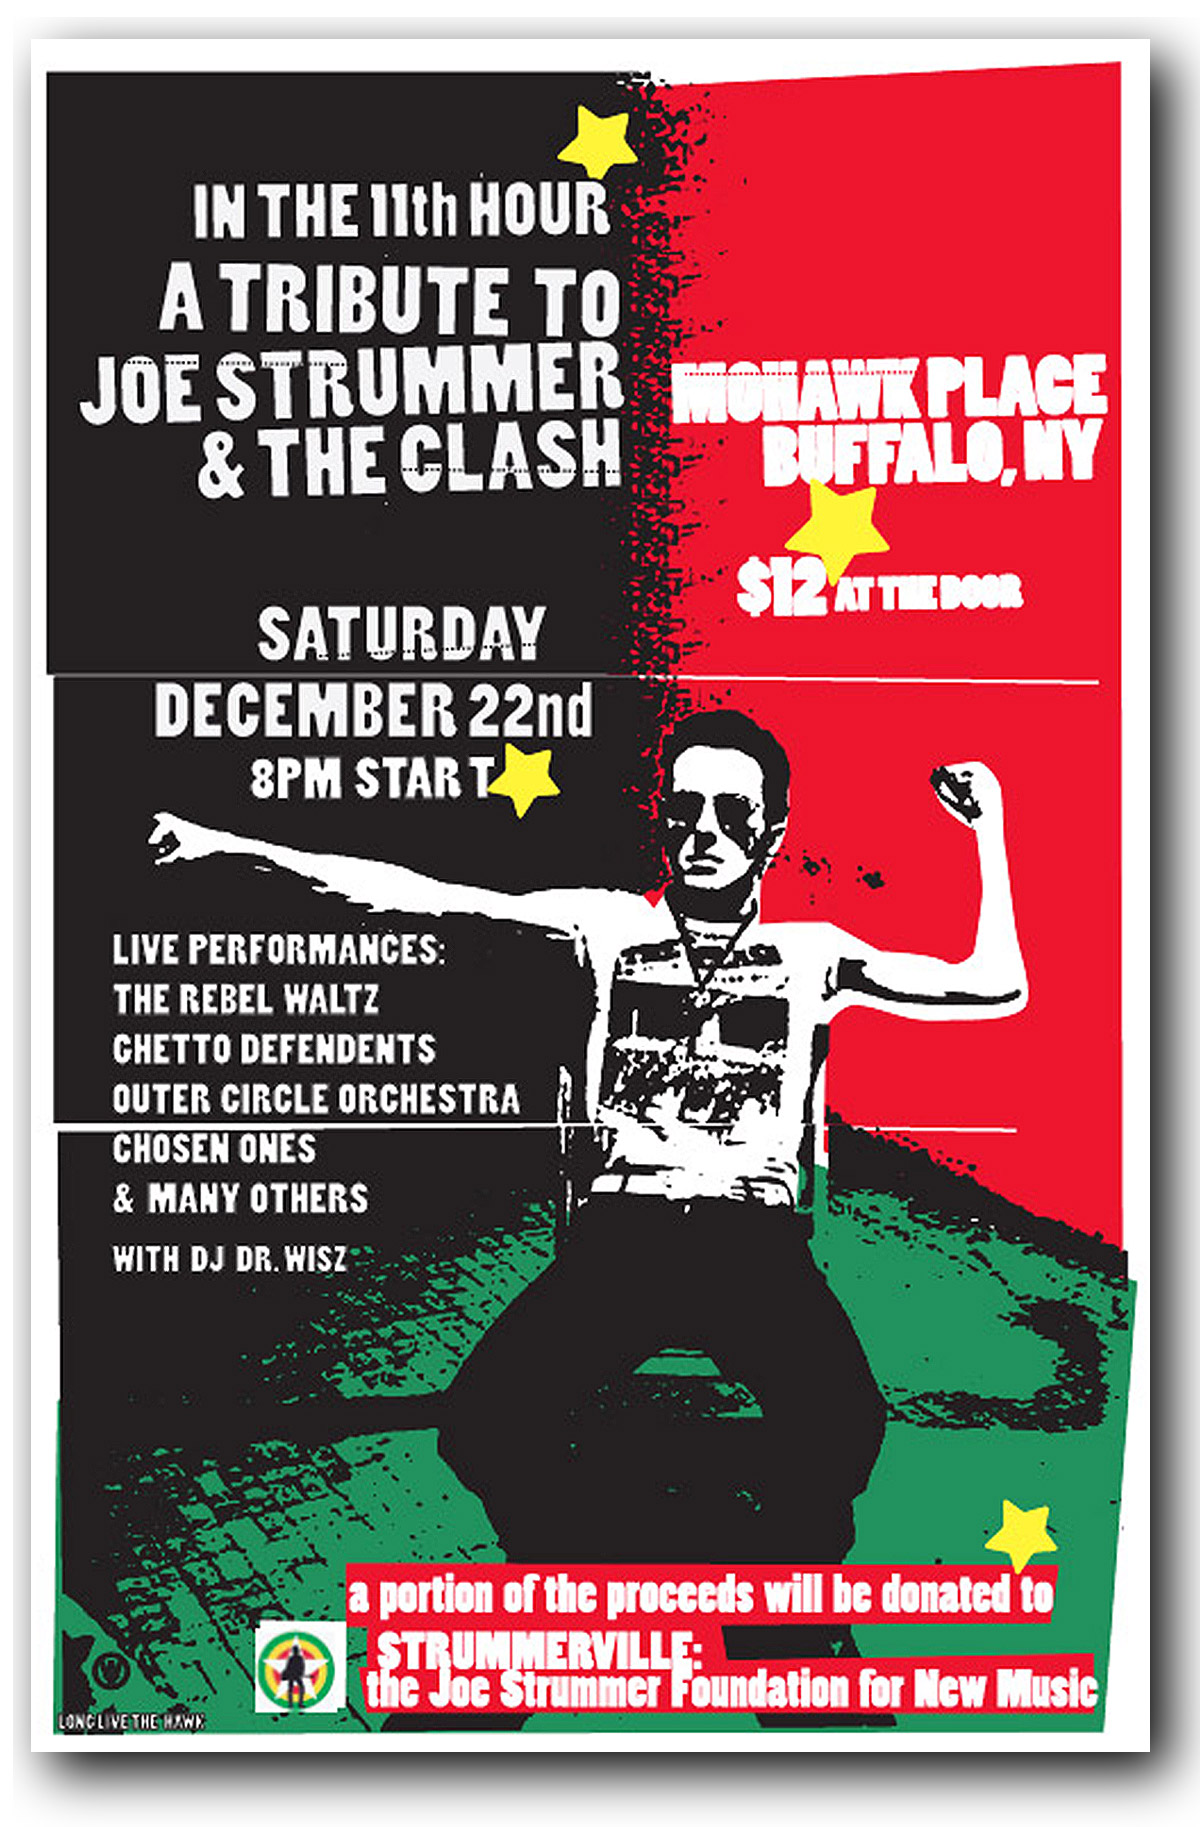 tribute to Joe Strummer and the clash,mohawk place,buffalo ny, poster design, mark wisz